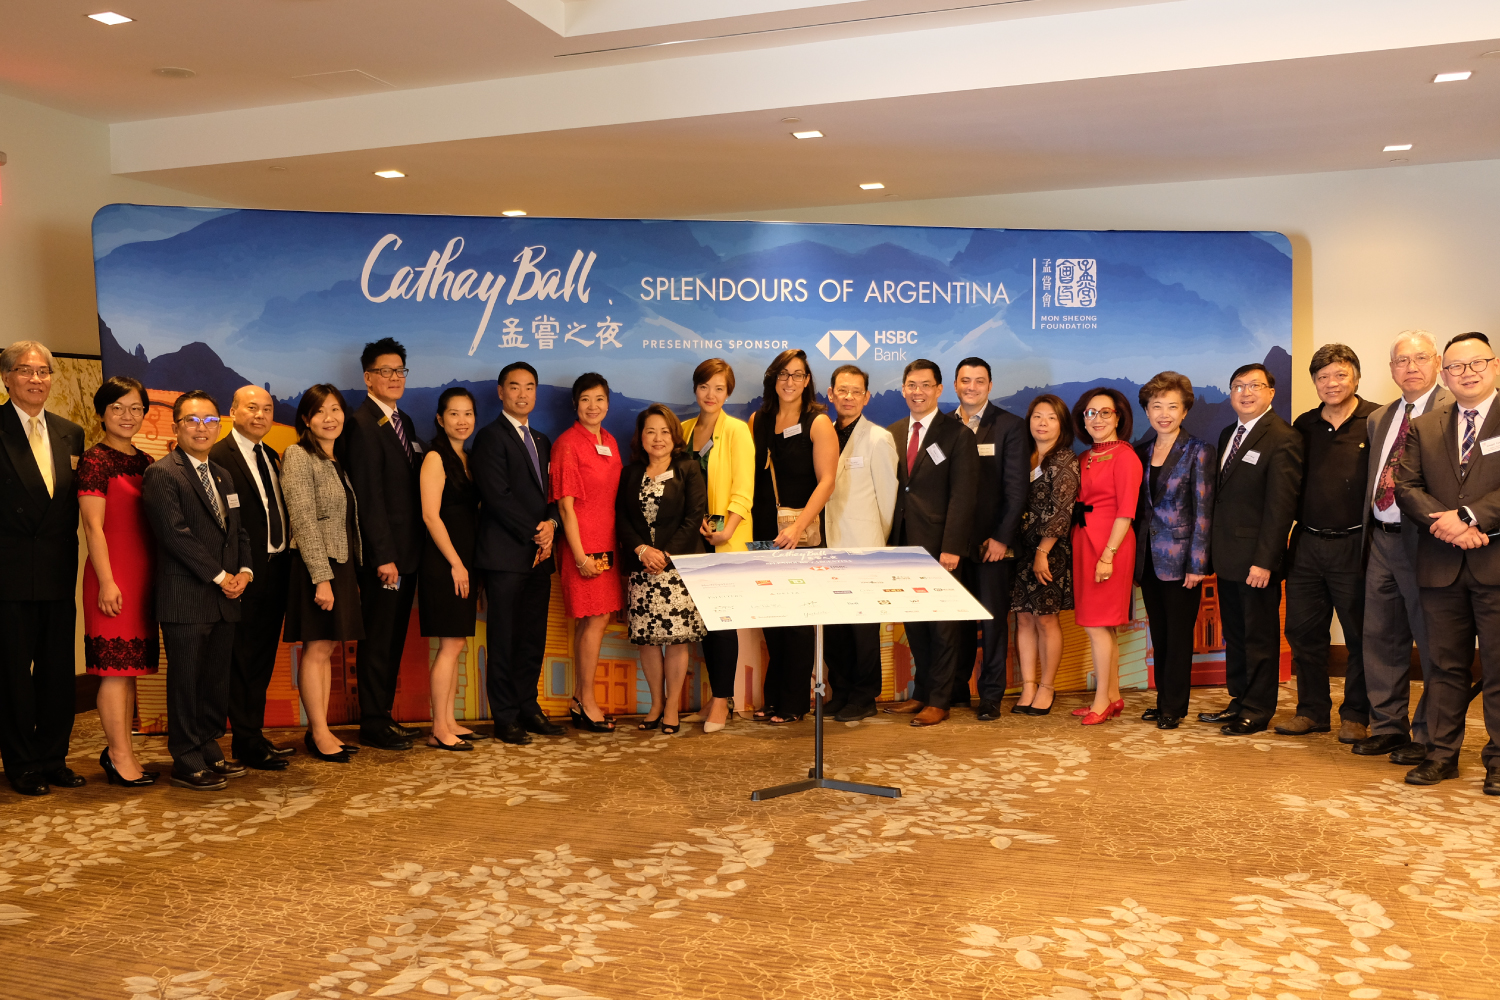 Cathay-Ball-Press-Conference-Banner